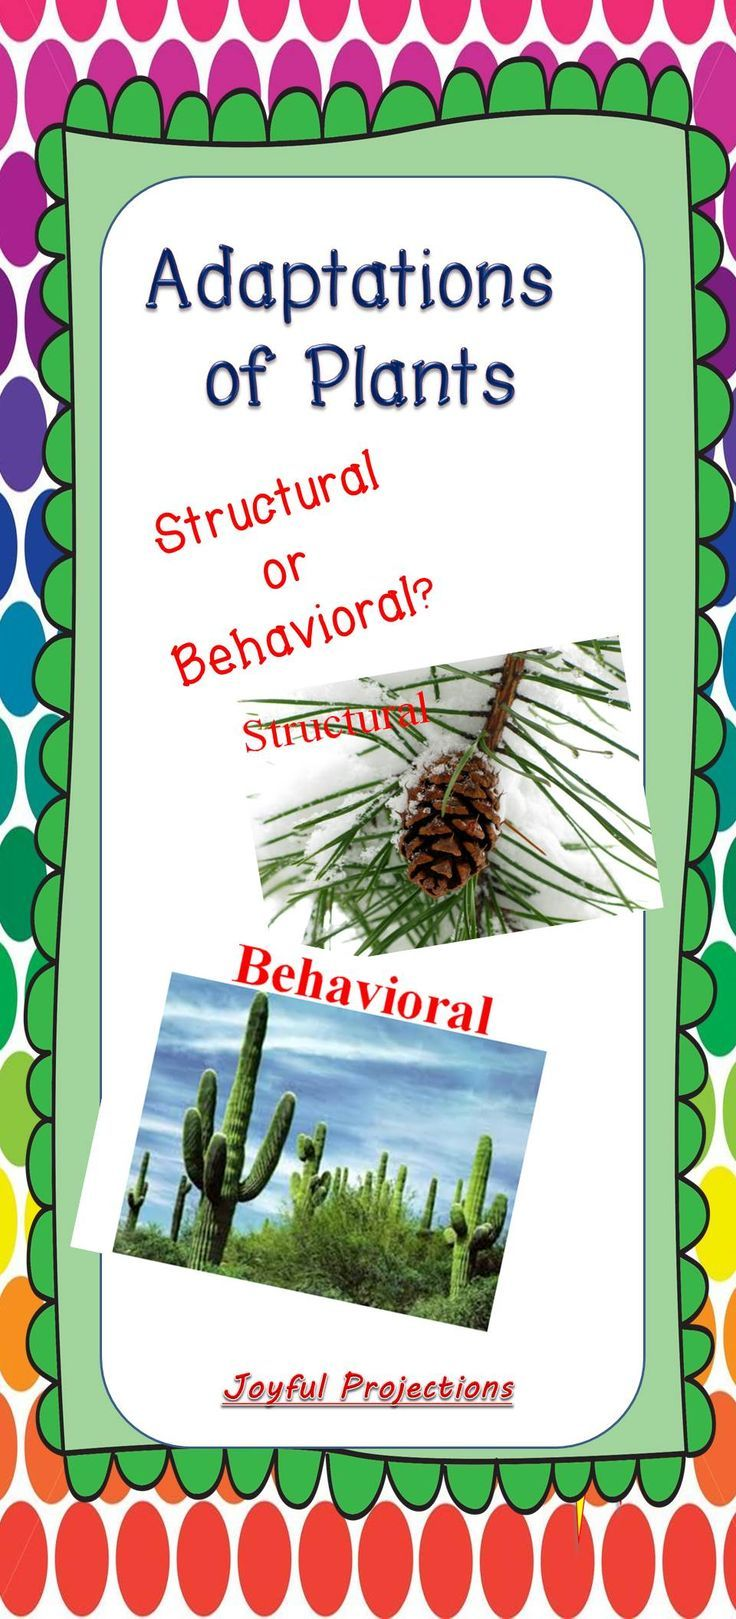 Plant Adaptations Structural or Behavioral Quiz.